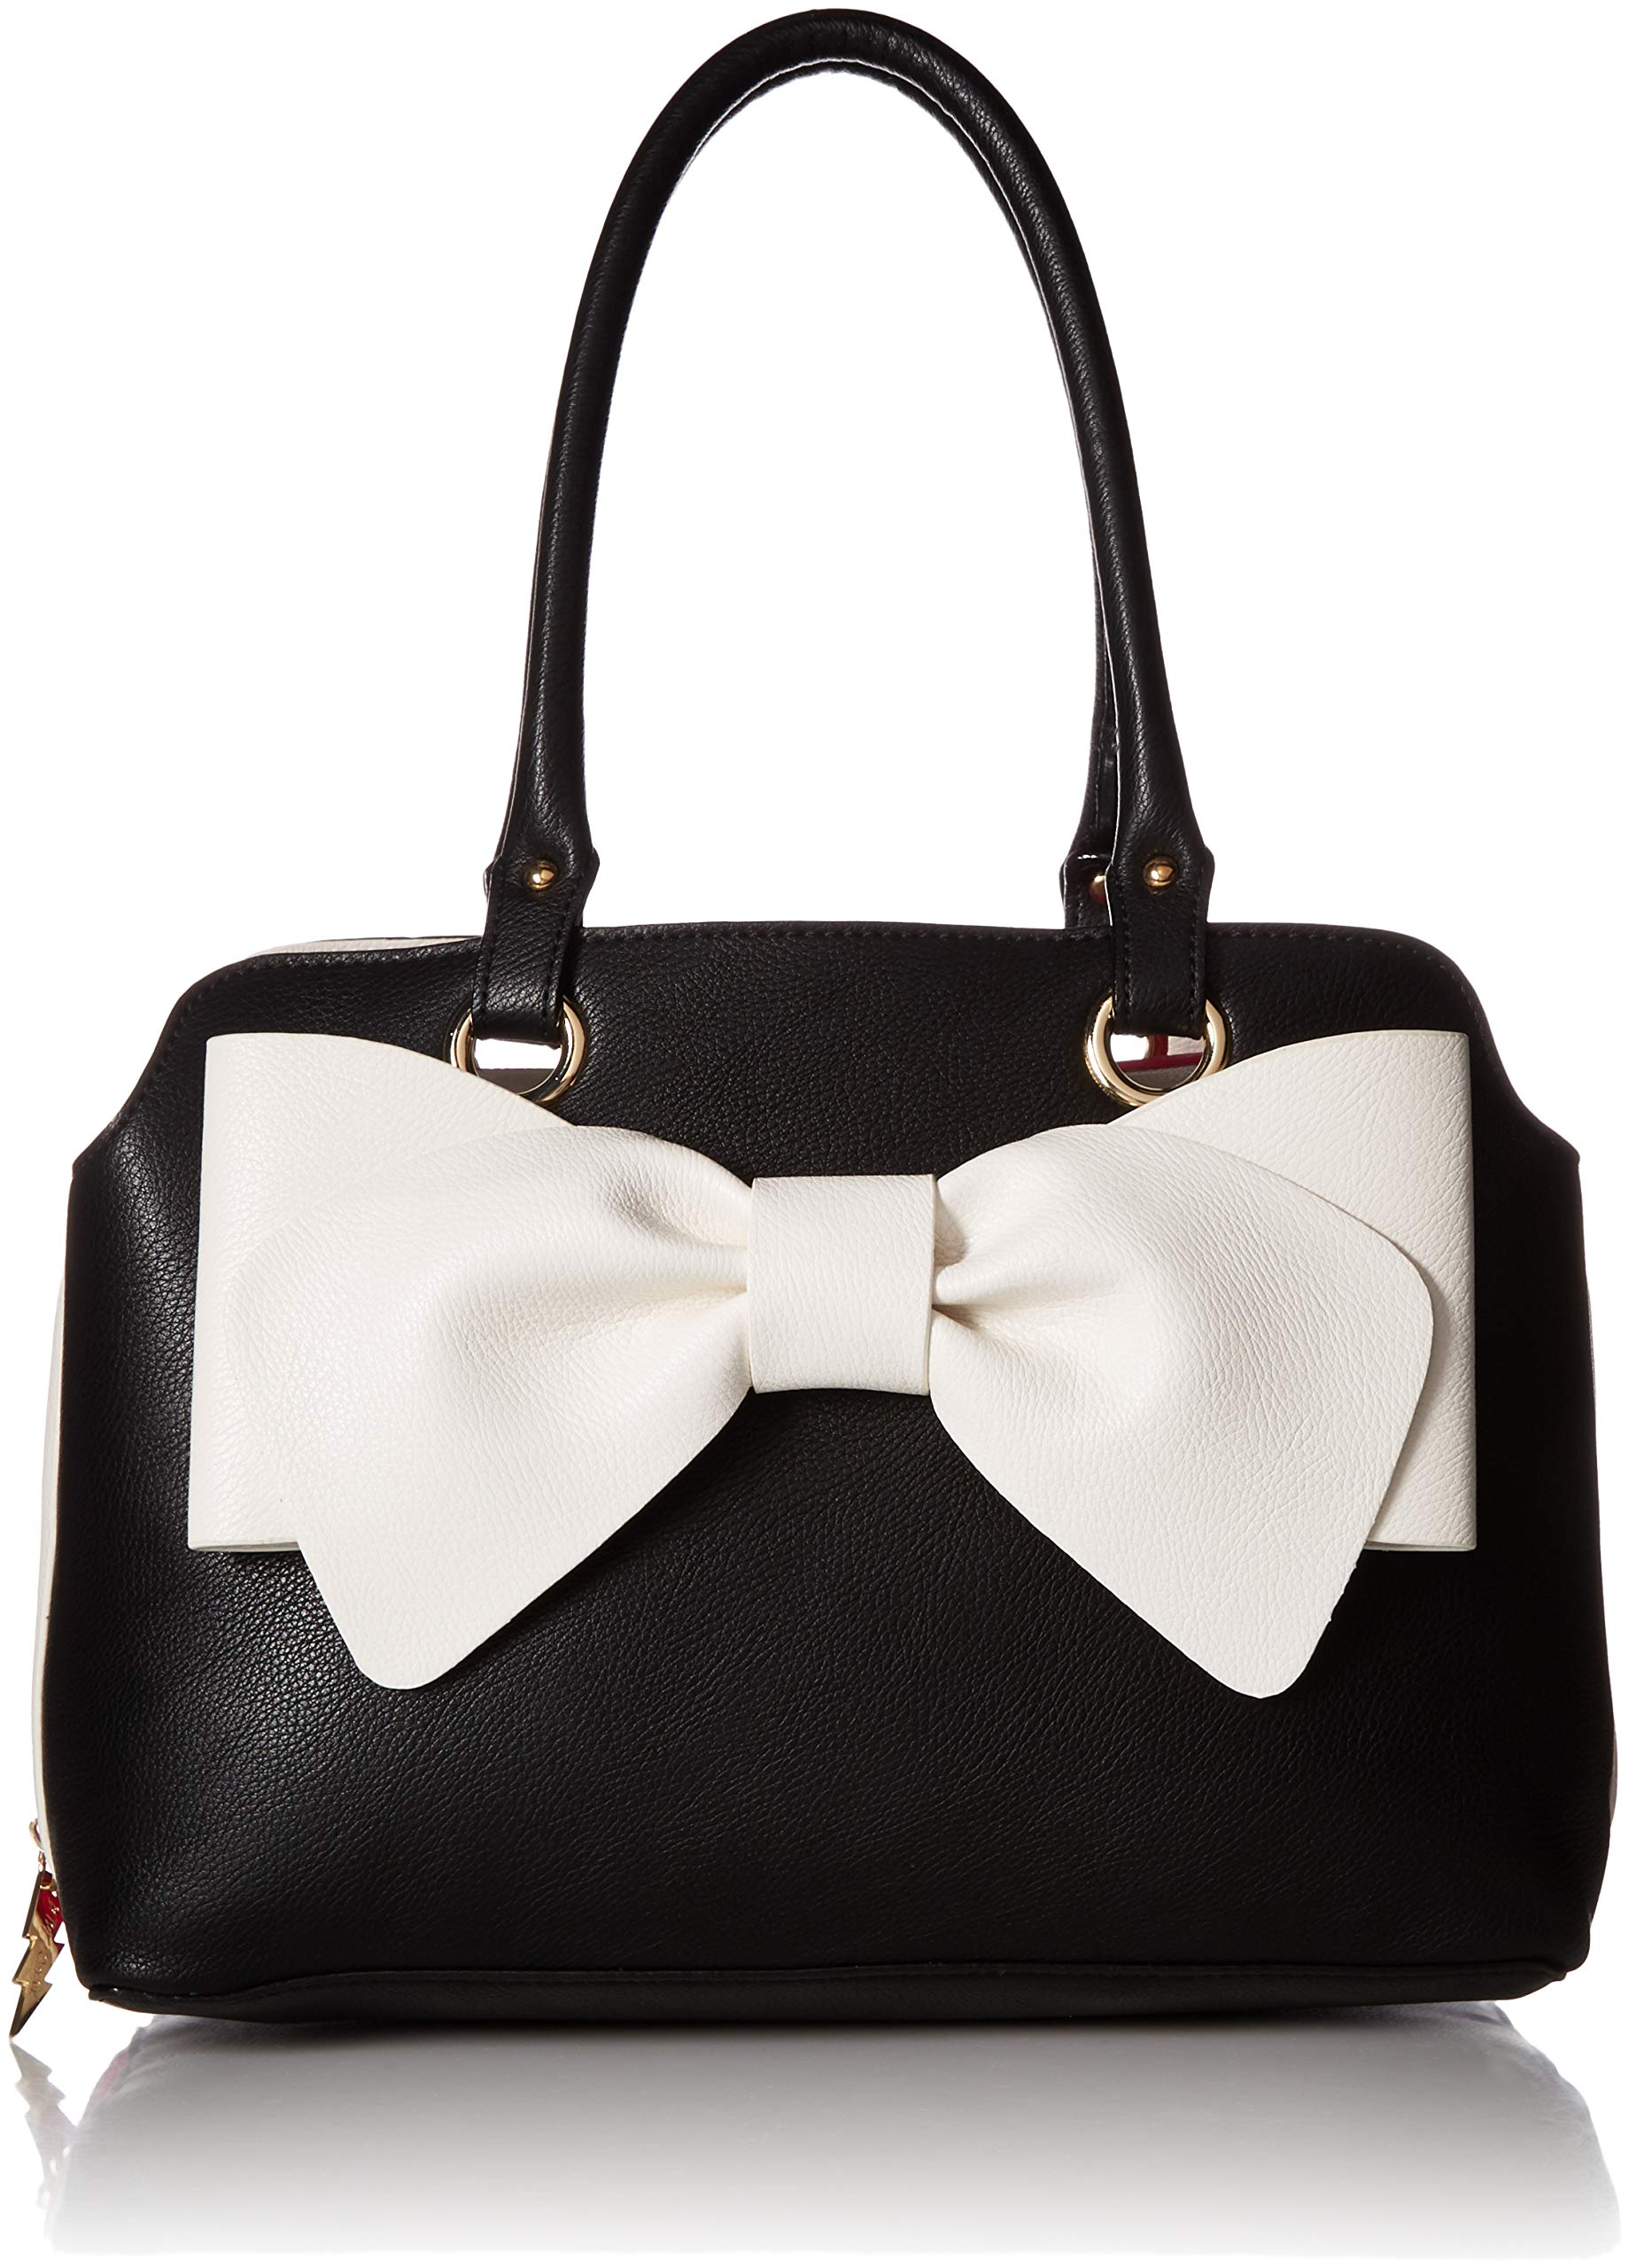 Betsey Johnson Pop Collar Satchel, Black